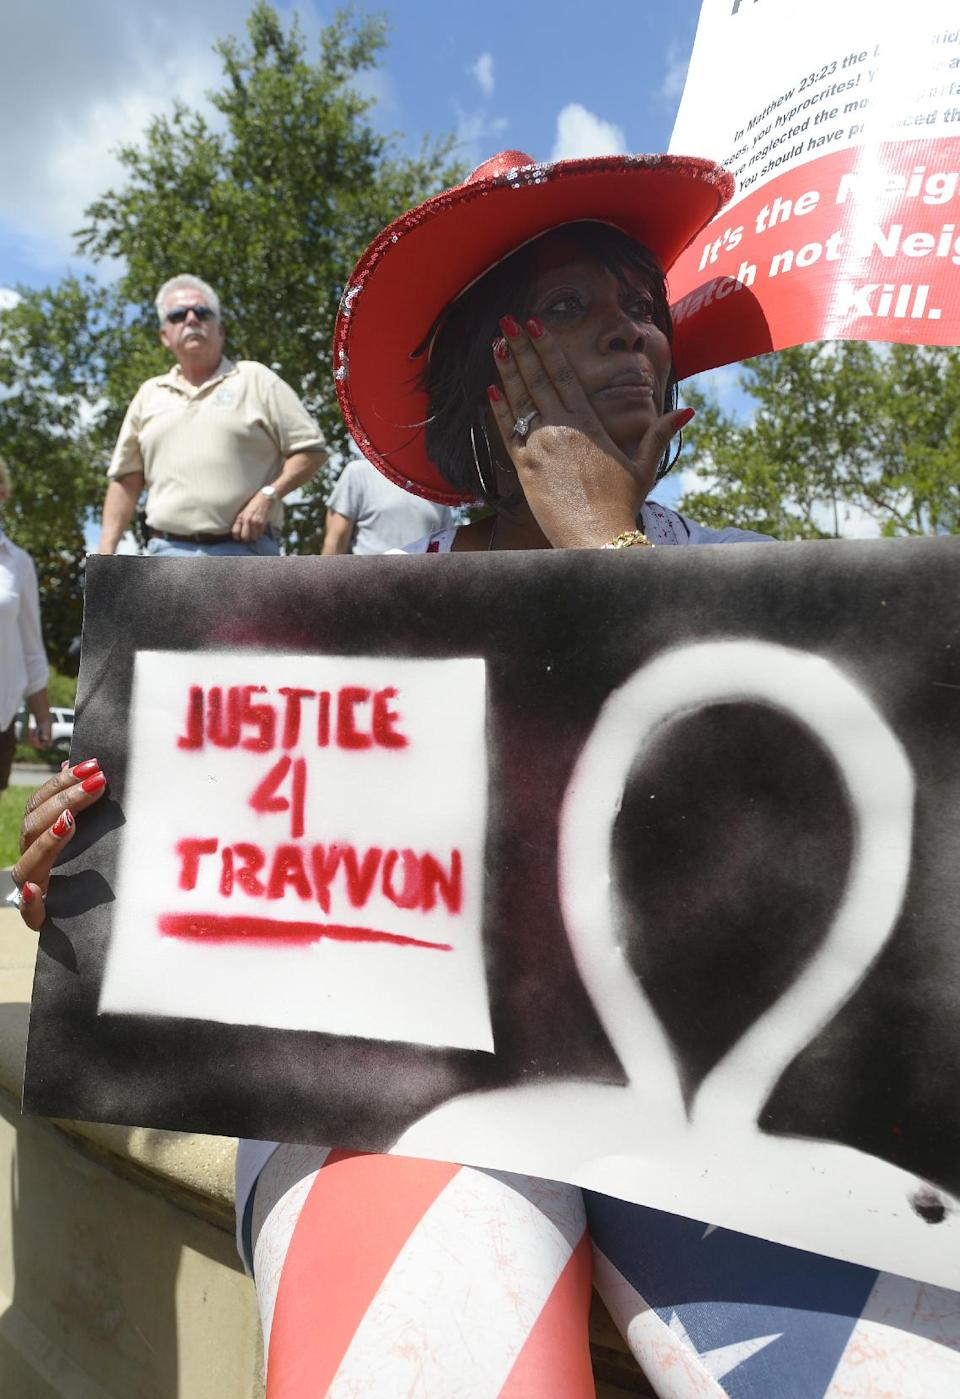 Cynthia Bradford, of Casselberry, Fla., wipes away tears while showing her support for Trayvon Martin outside the Seminole County Courthouse in Sanford, Fla., Saturday, July 13, 2013. Zimmerman has been charged in the 2012 shooting death of Trayvon Martin.(AP Photo/Phelan M. Ebenhack)